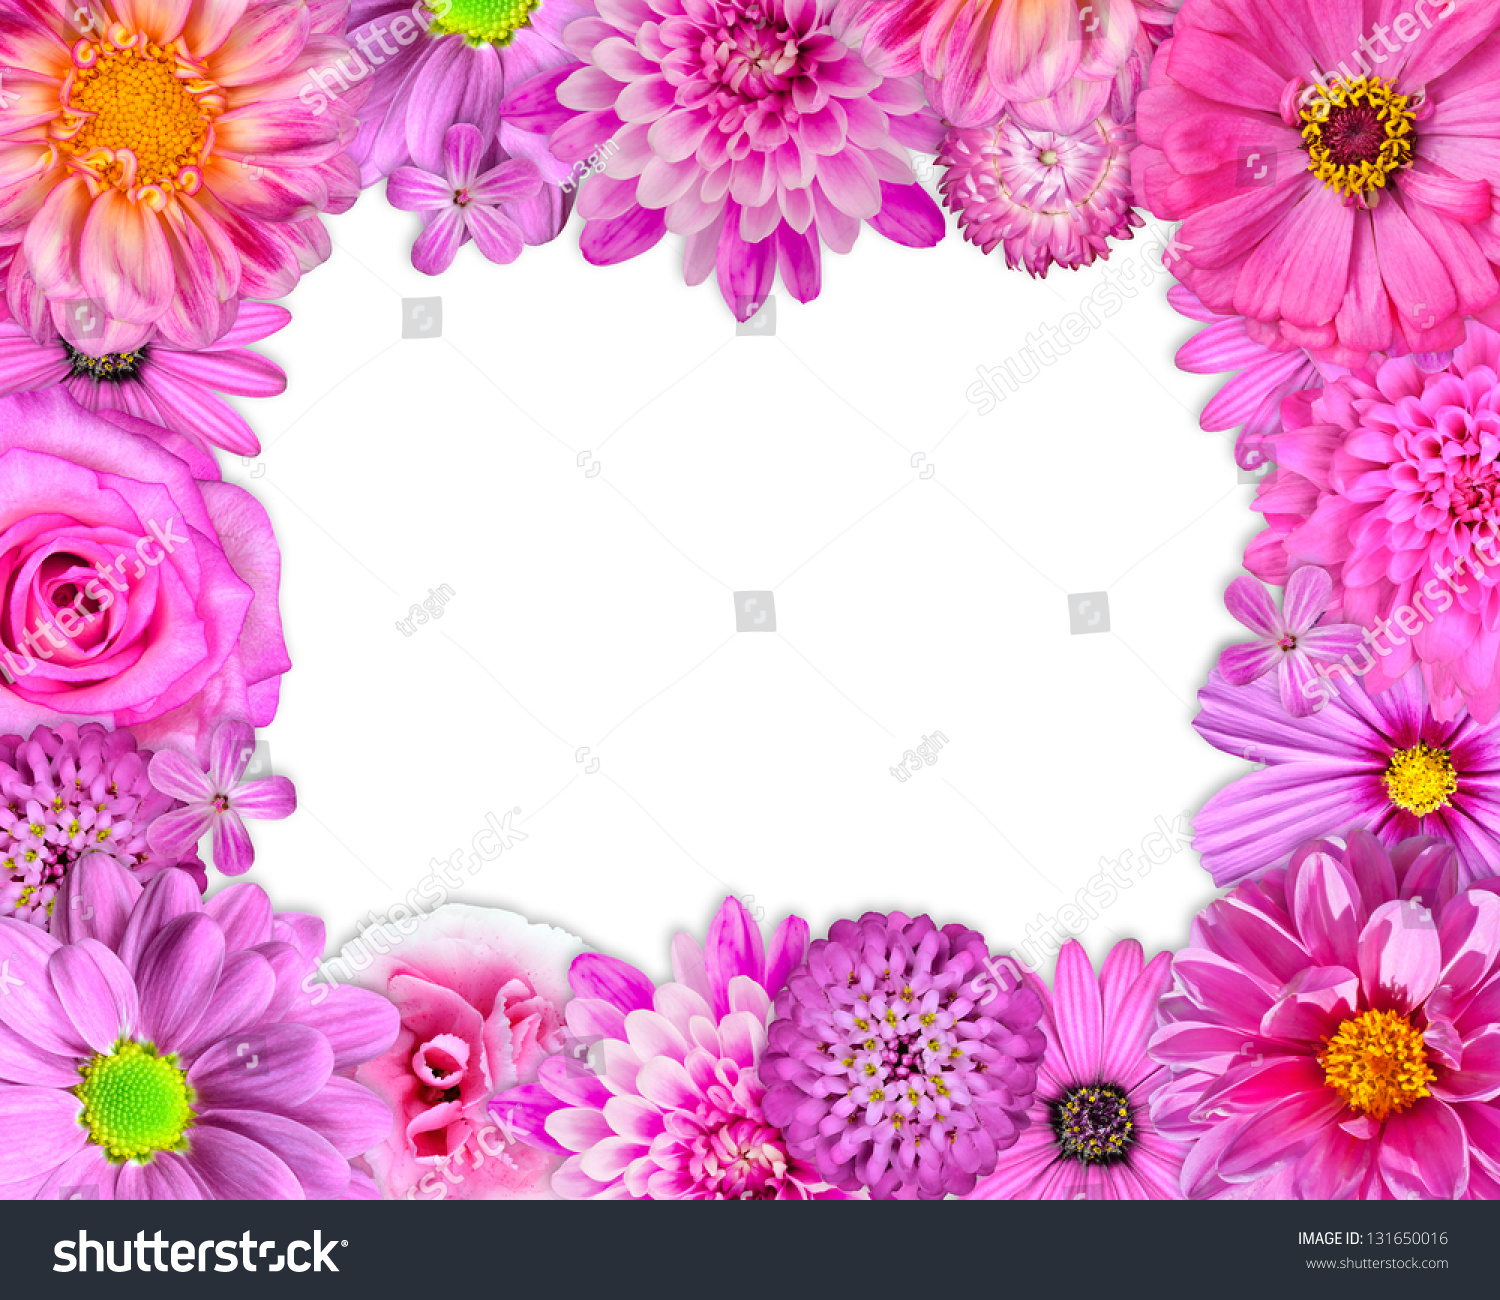 flower frame with pink purple red flowers isolated on white background selection of